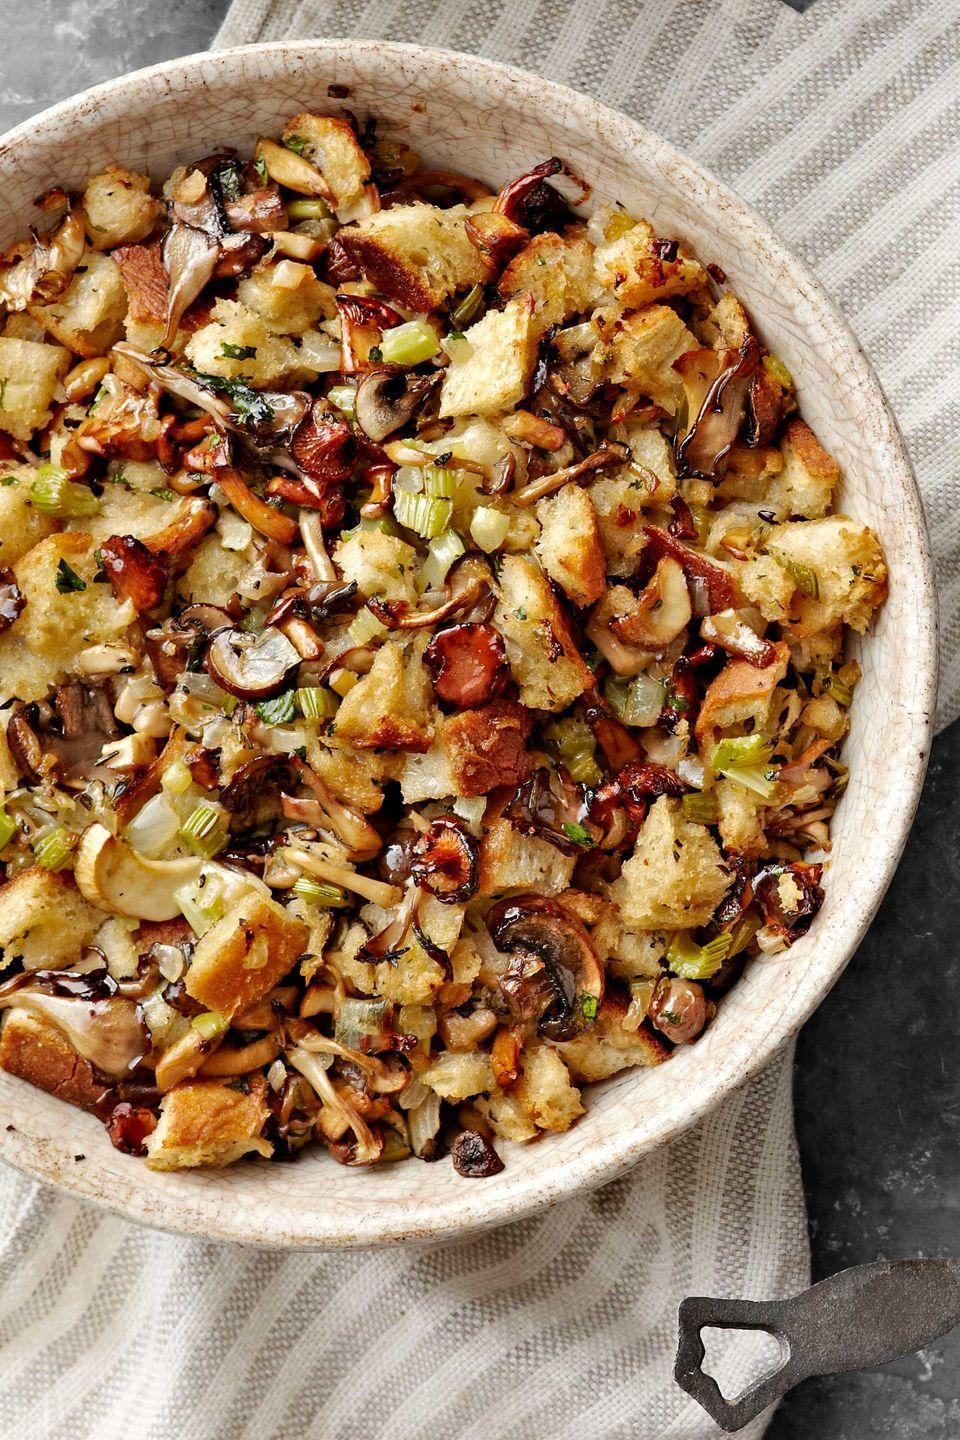 "<p class=""imageContent"">A lighter-than-expected stuffing. Serve this Thanksgiving favorite with <a href=""https://www.countryliving.com/food-drinks/recipes/a4237/perfect-roast-turkey-recipe-clv1112/"" rel=""nofollow noopener"" target=""_blank"" data-ylk=""slk:The Perfect Roast Turkey"" class=""link rapid-noclick-resp""><strong>The Perfect Roast Turkey</strong></a>. Assemble the stuffing a day ahead in a buttered dish, cover, refrigerate, and bake when needed.</p><p class=""imageContent""><strong><a href=""https://www.countryliving.com/food-drinks/recipes/a1135/sourdough-mushroom-stuffing-3242/"" rel=""nofollow noopener"" target=""_blank"" data-ylk=""slk:Get the recipe"" class=""link rapid-noclick-resp"">Get the recipe</a>.</strong><br></p>"